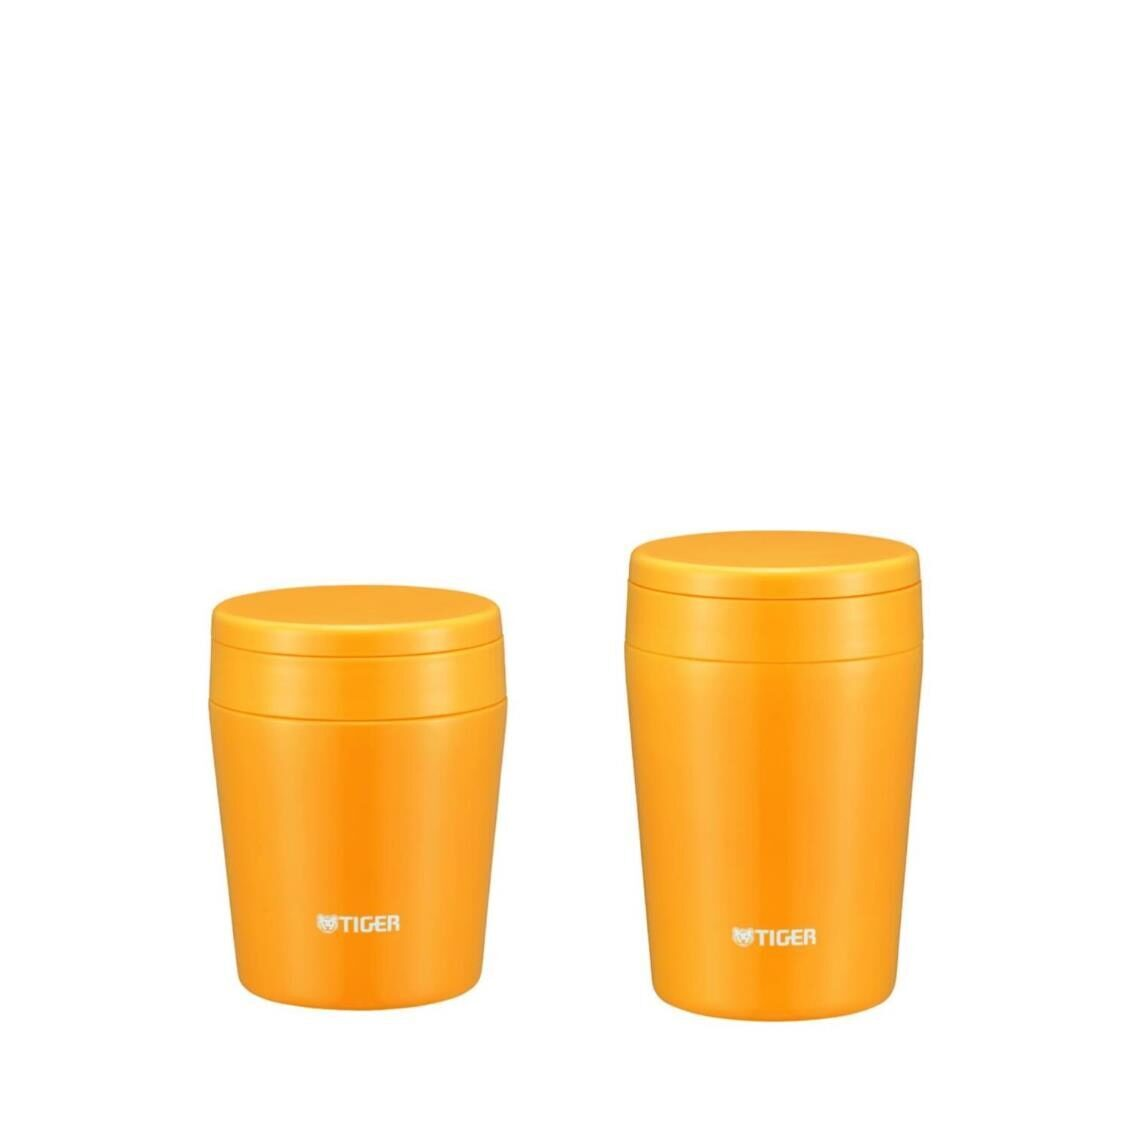 Tiger 300ml380ml Double Stainless Steel Soup Cup Set - Yellow